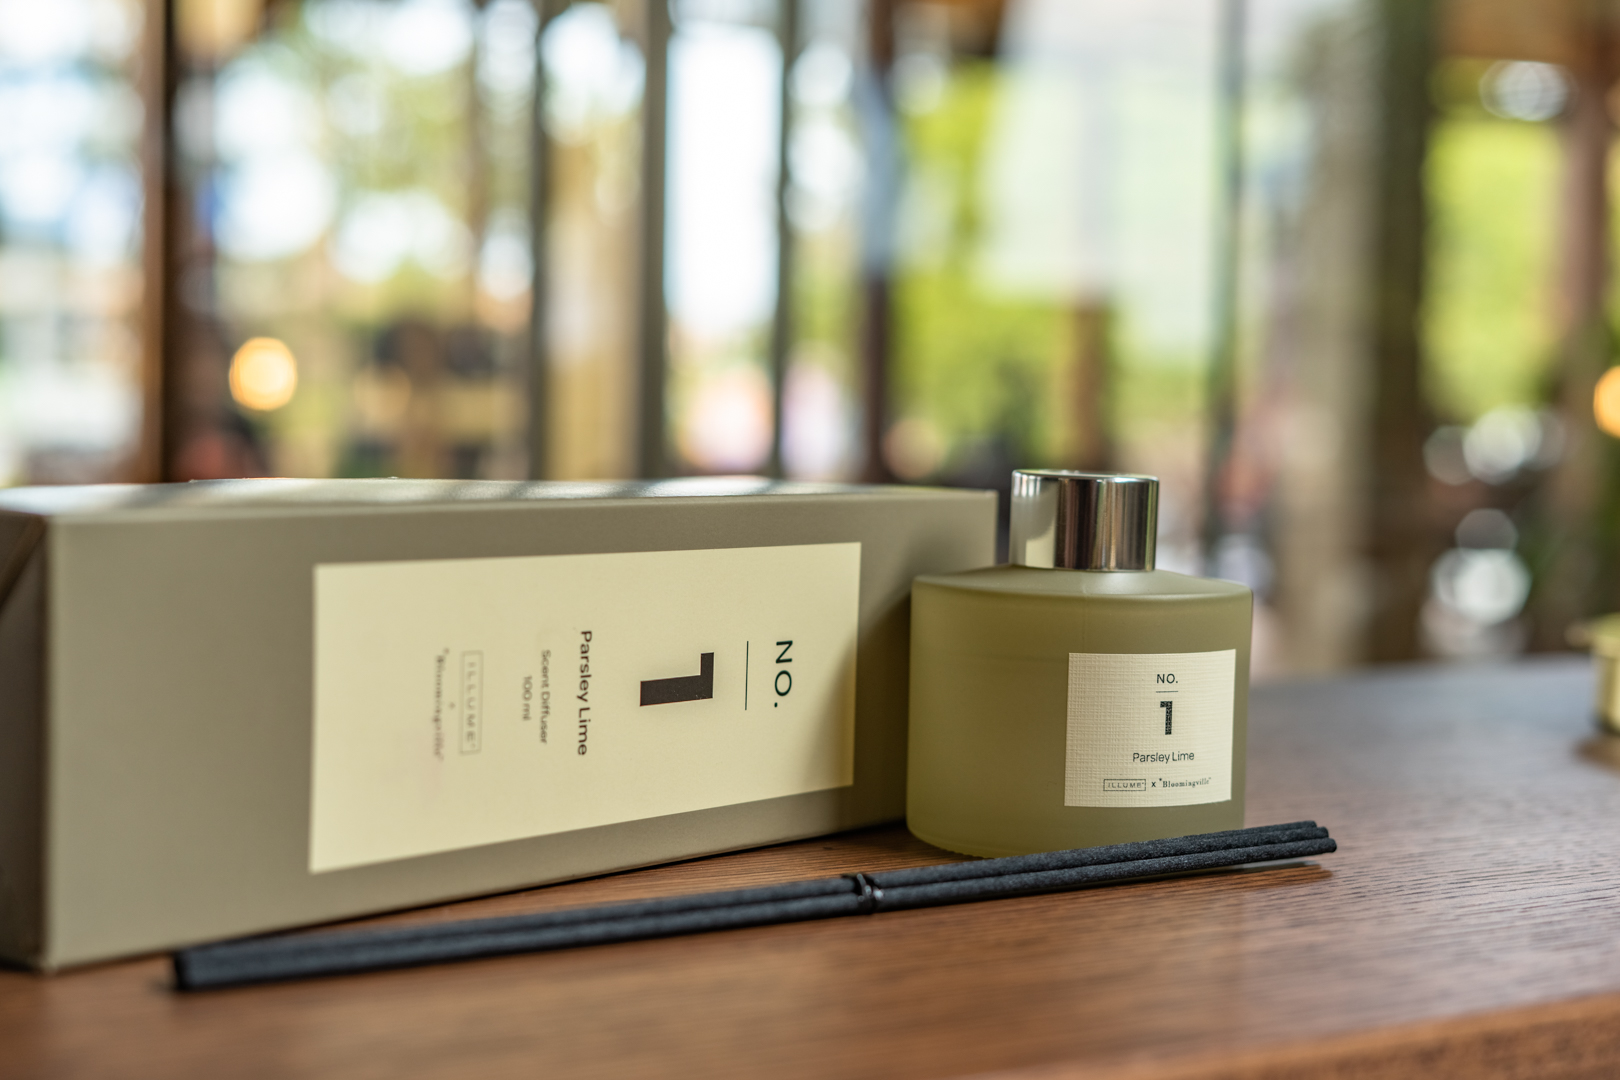 NO.1 Diffuser Parsley lime Scent